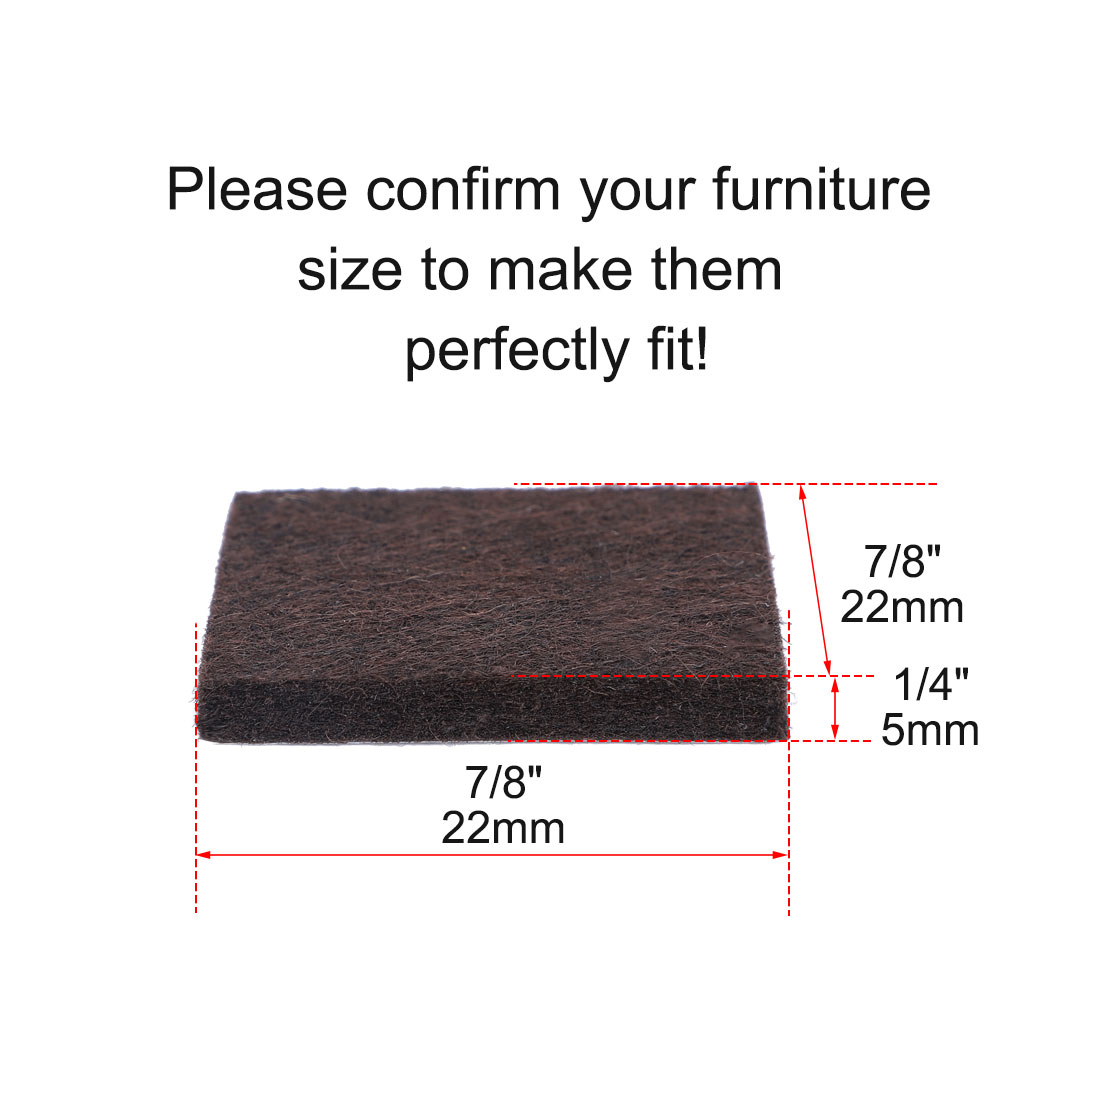 "Felt Furniture Pads Square 7/8"" Self Adhesive Anti-scratch Floor Protector 40pcs - image 1 of 7"